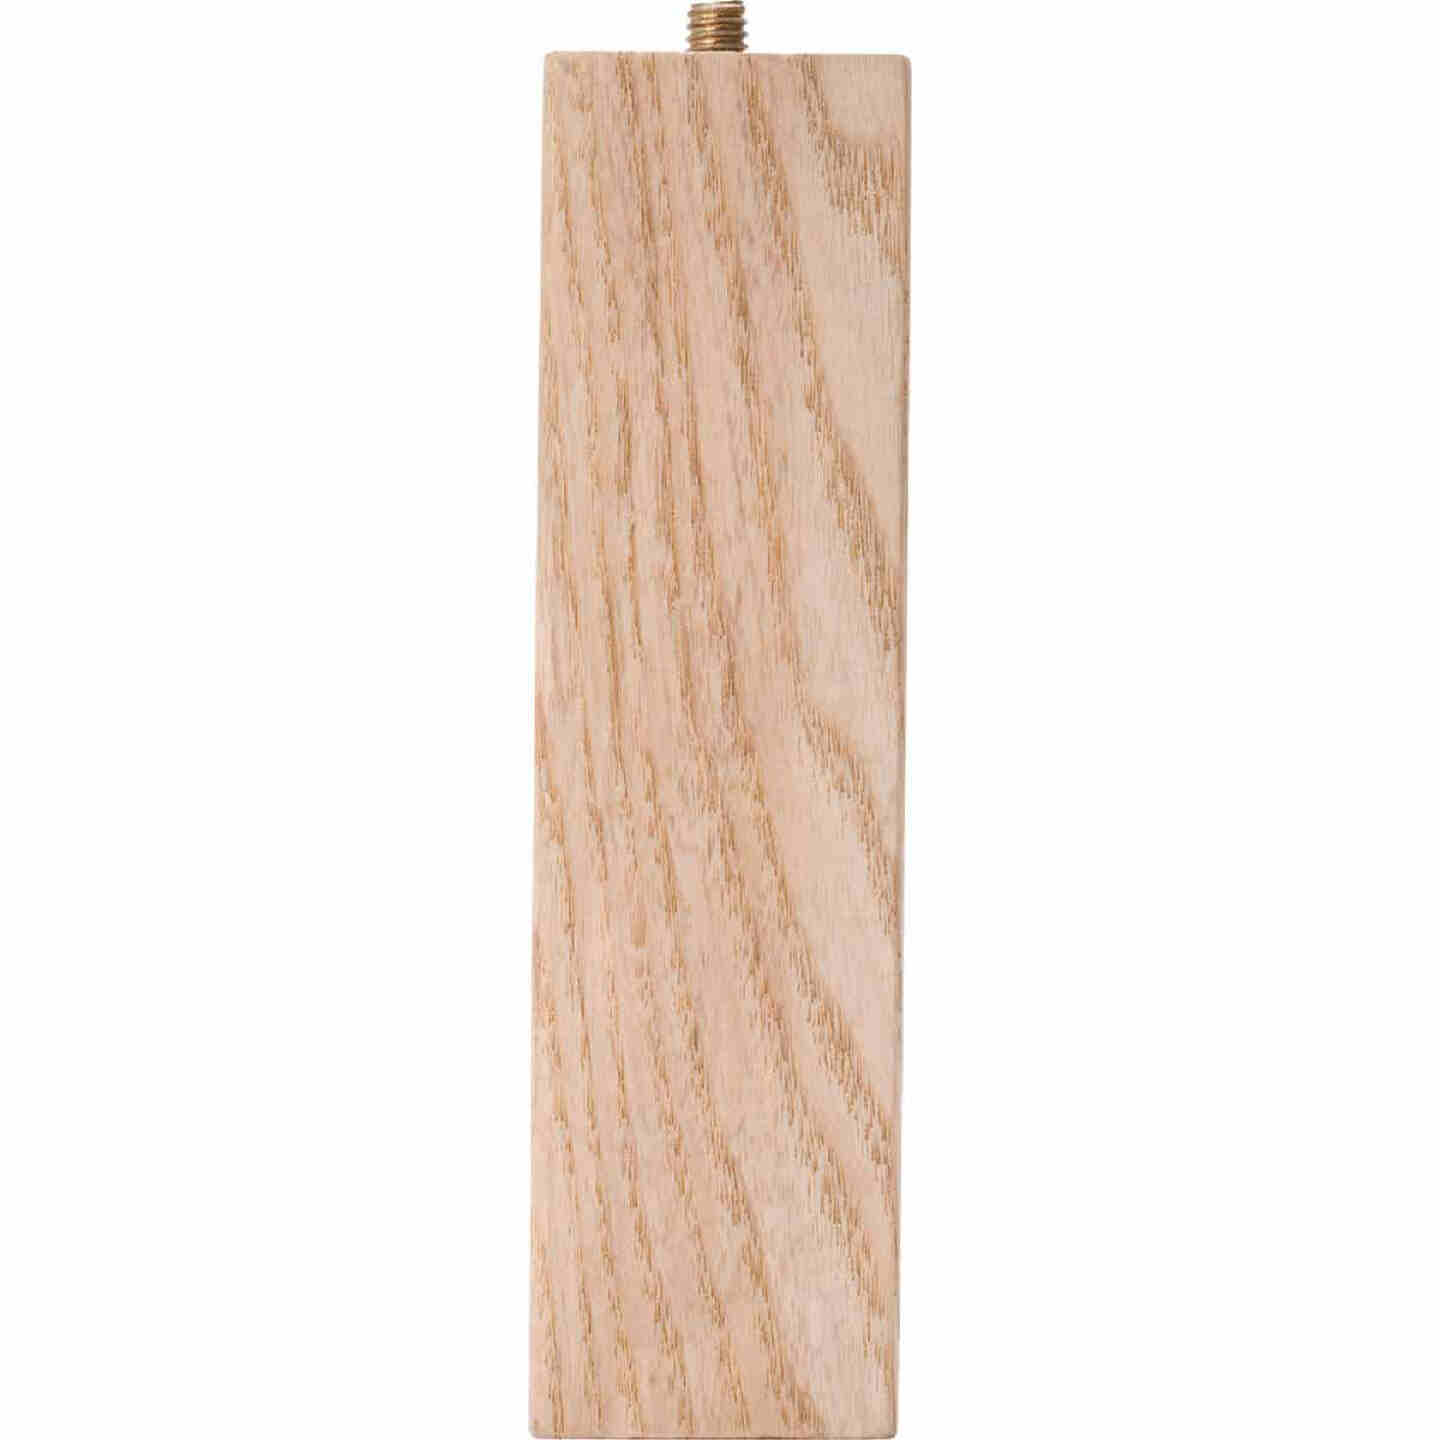 Waddell 6 In. 1-5/8 In. Ash Parson Table Leg Image 1